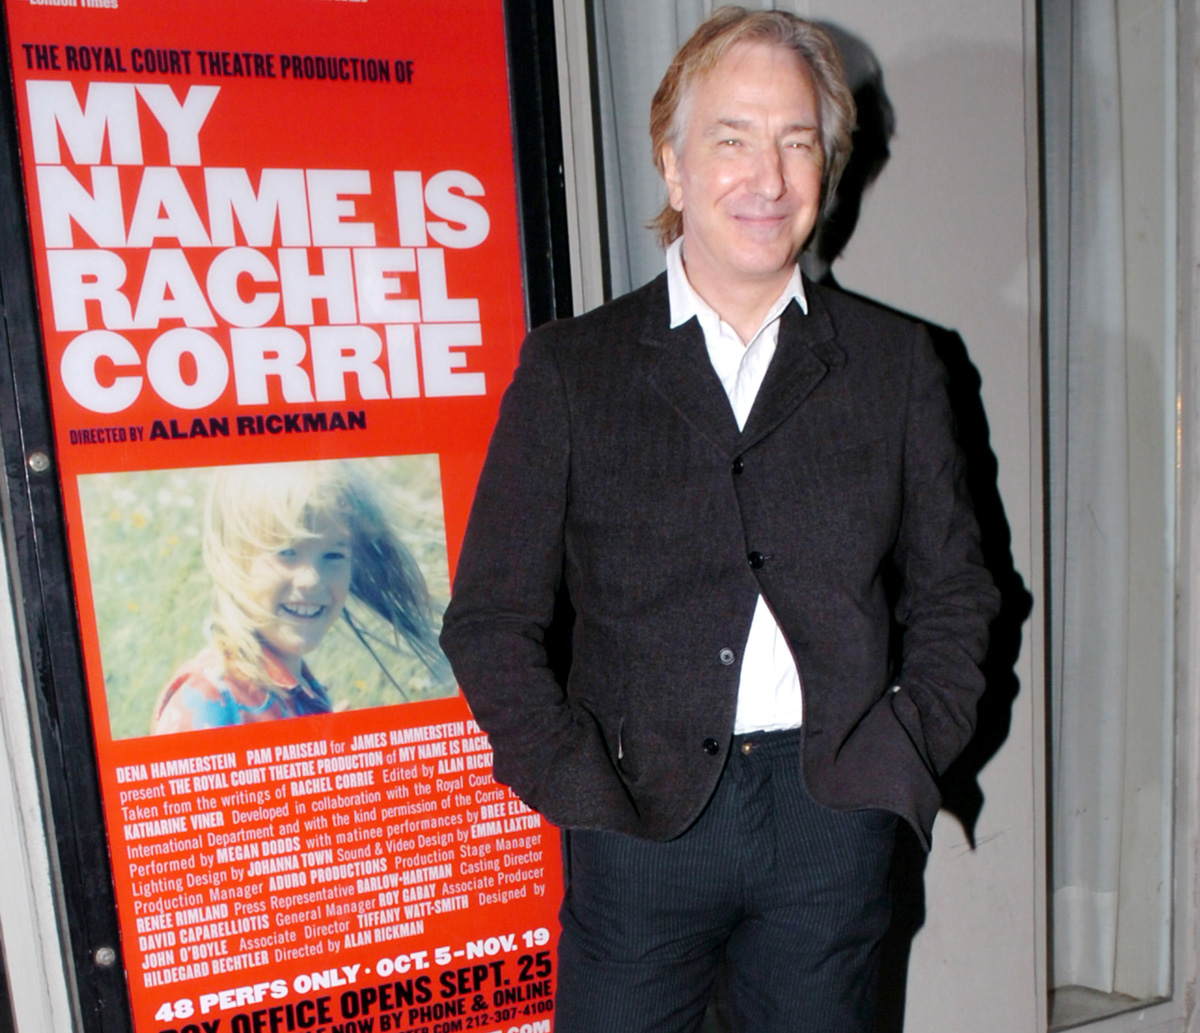 alan-rickman-my-name-is-rachel-corrie